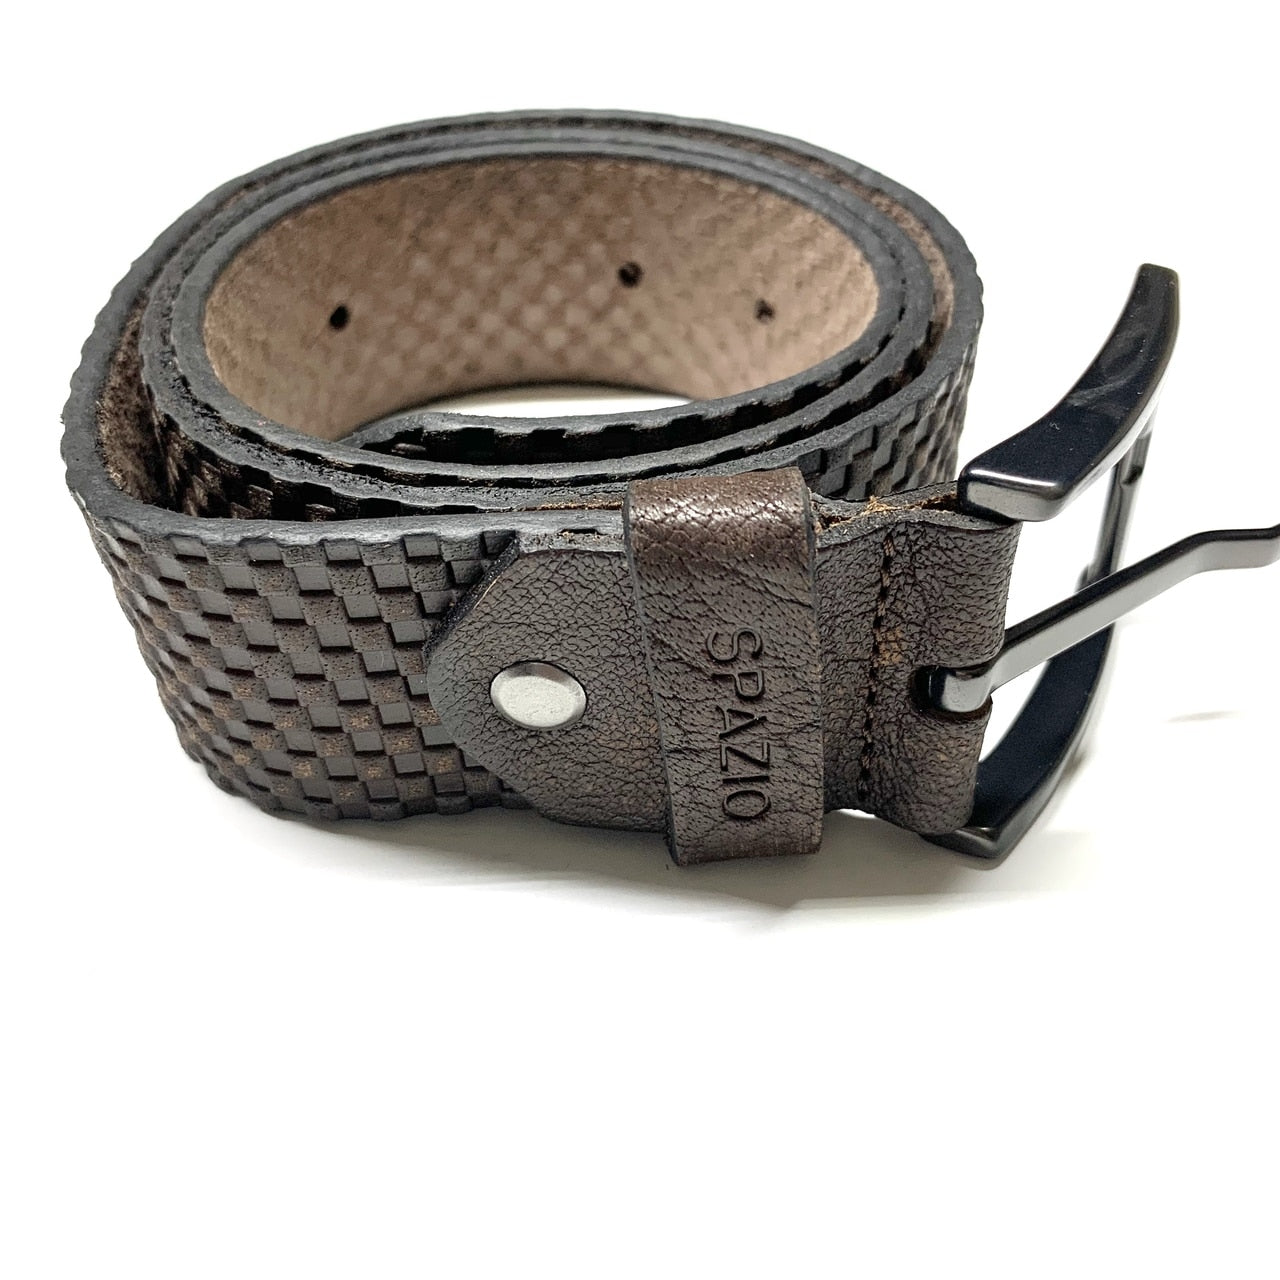 Checkered Stamped Belt -  Brown